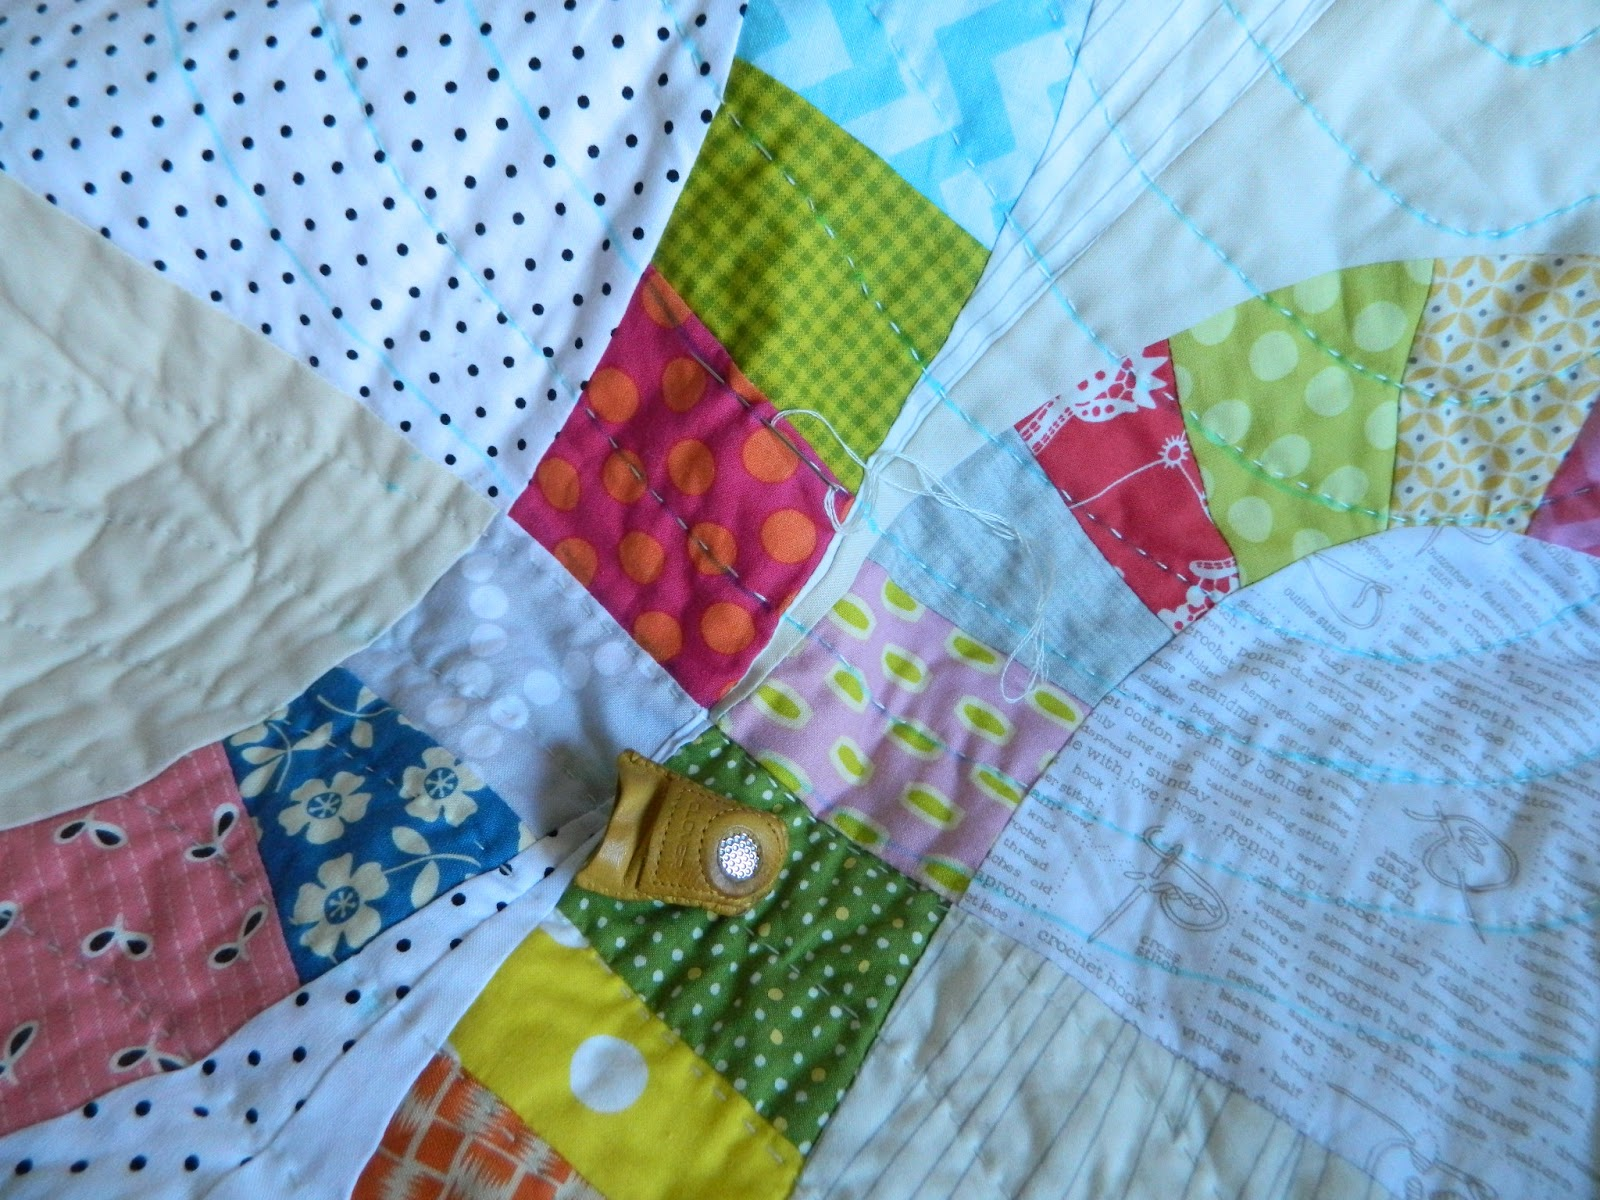 s.o.t.a.k handmade: hand quilting